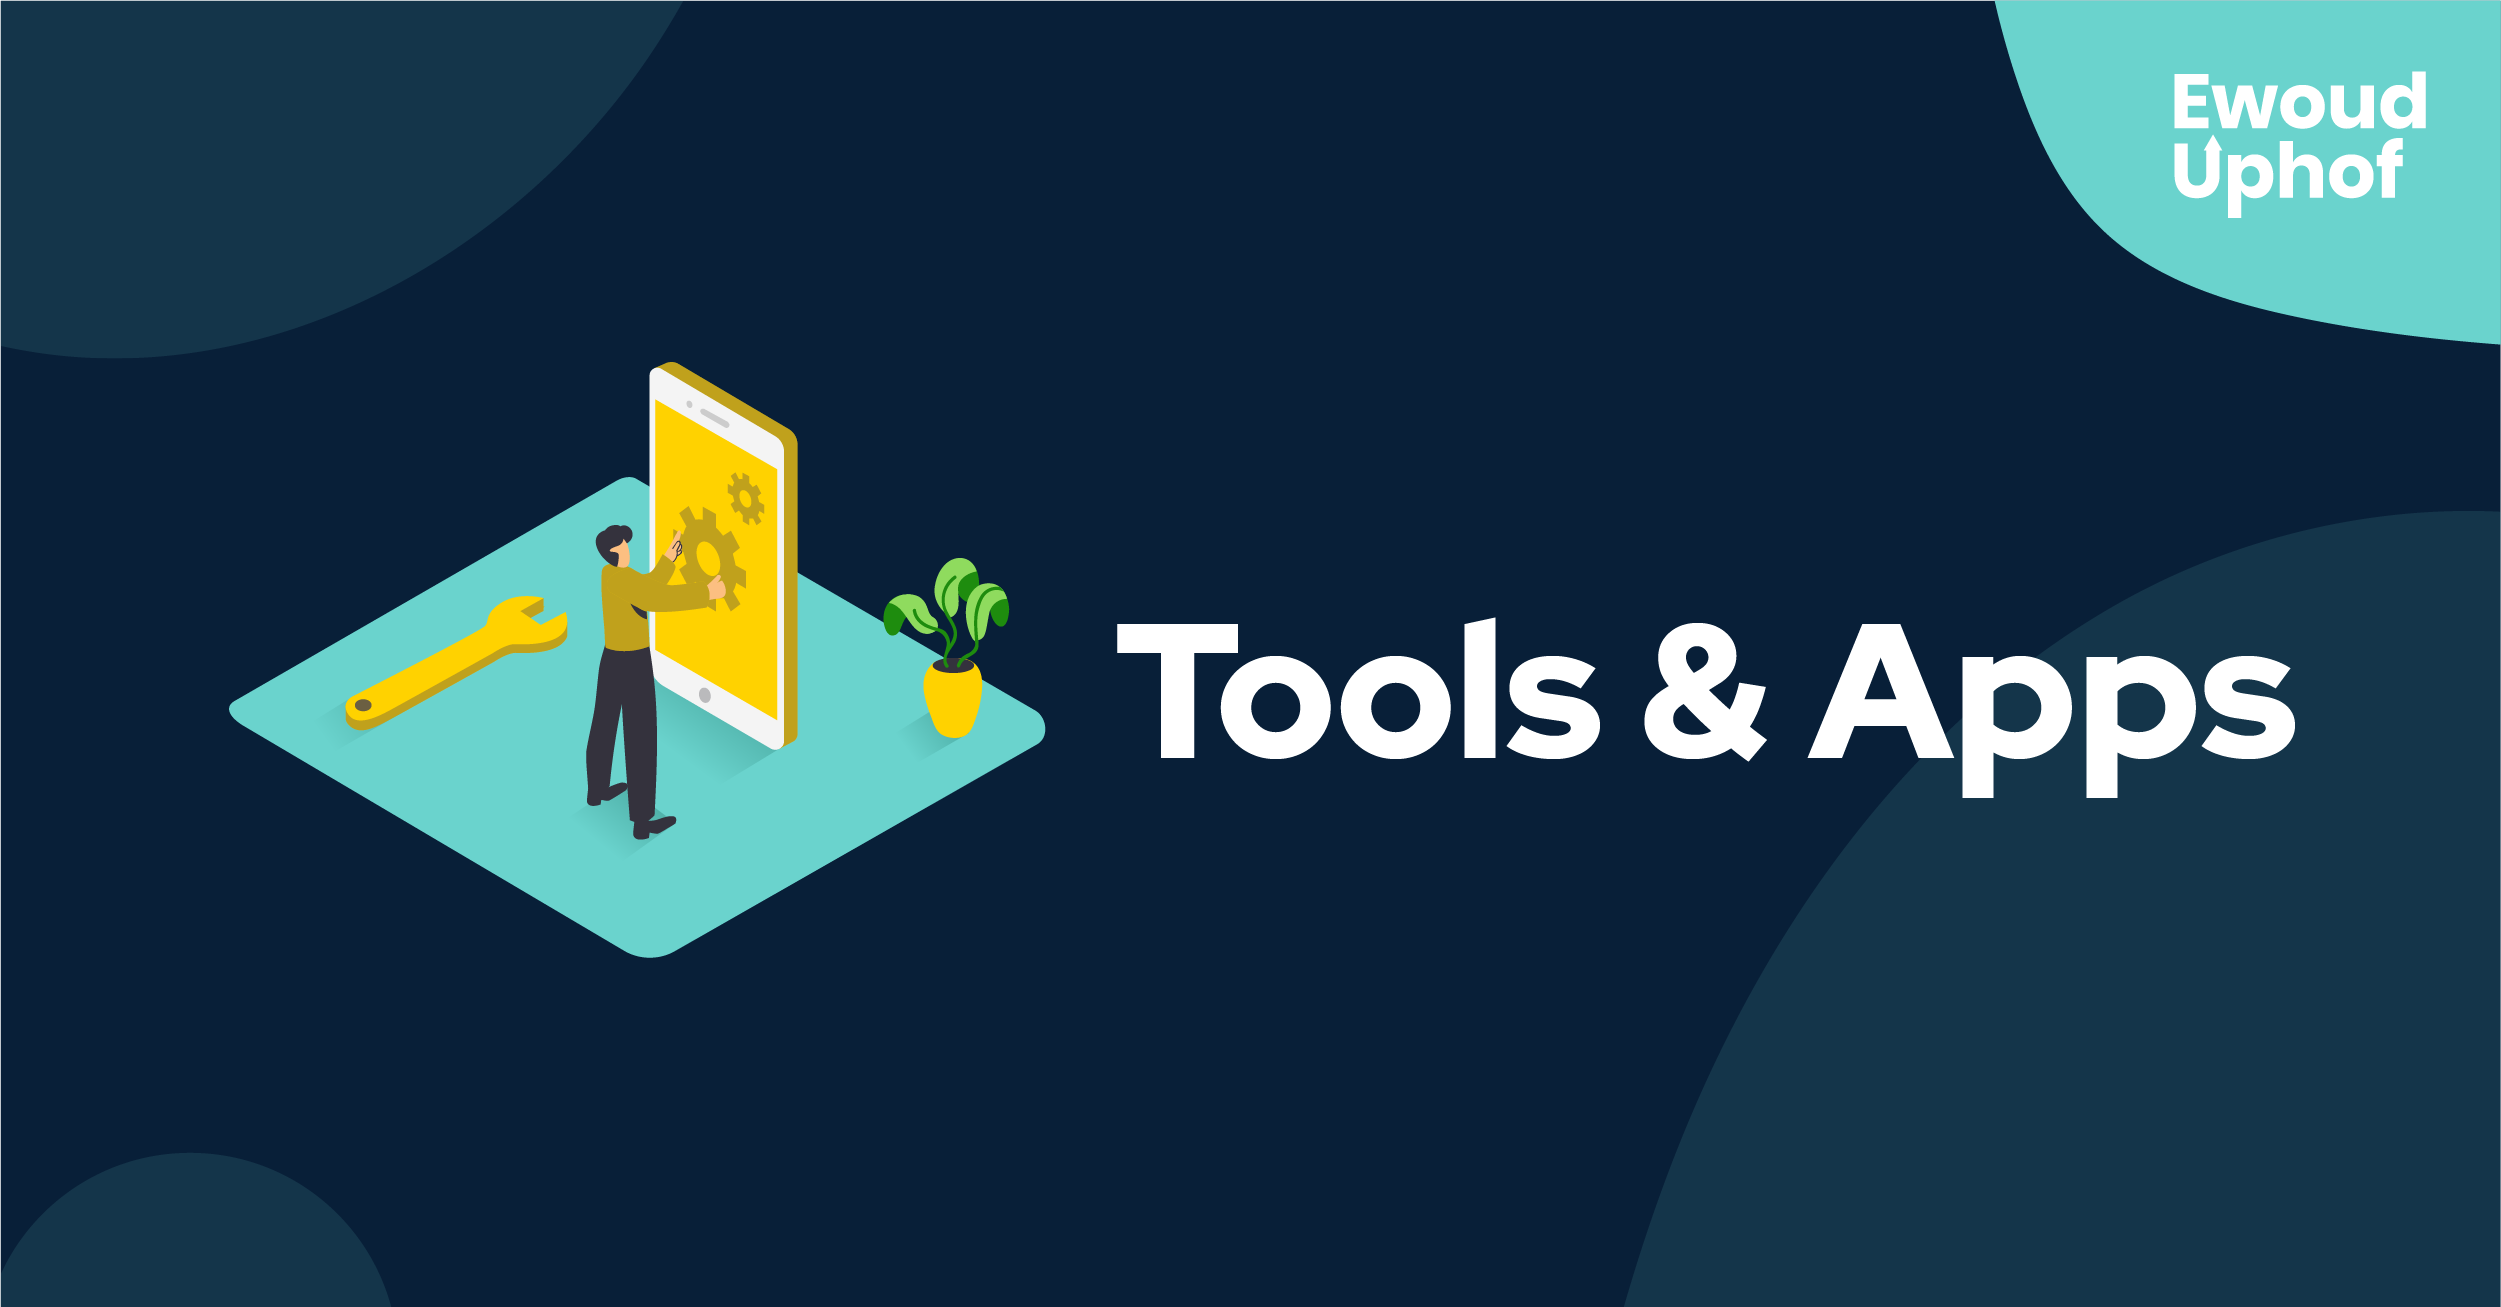 Tools & Apps